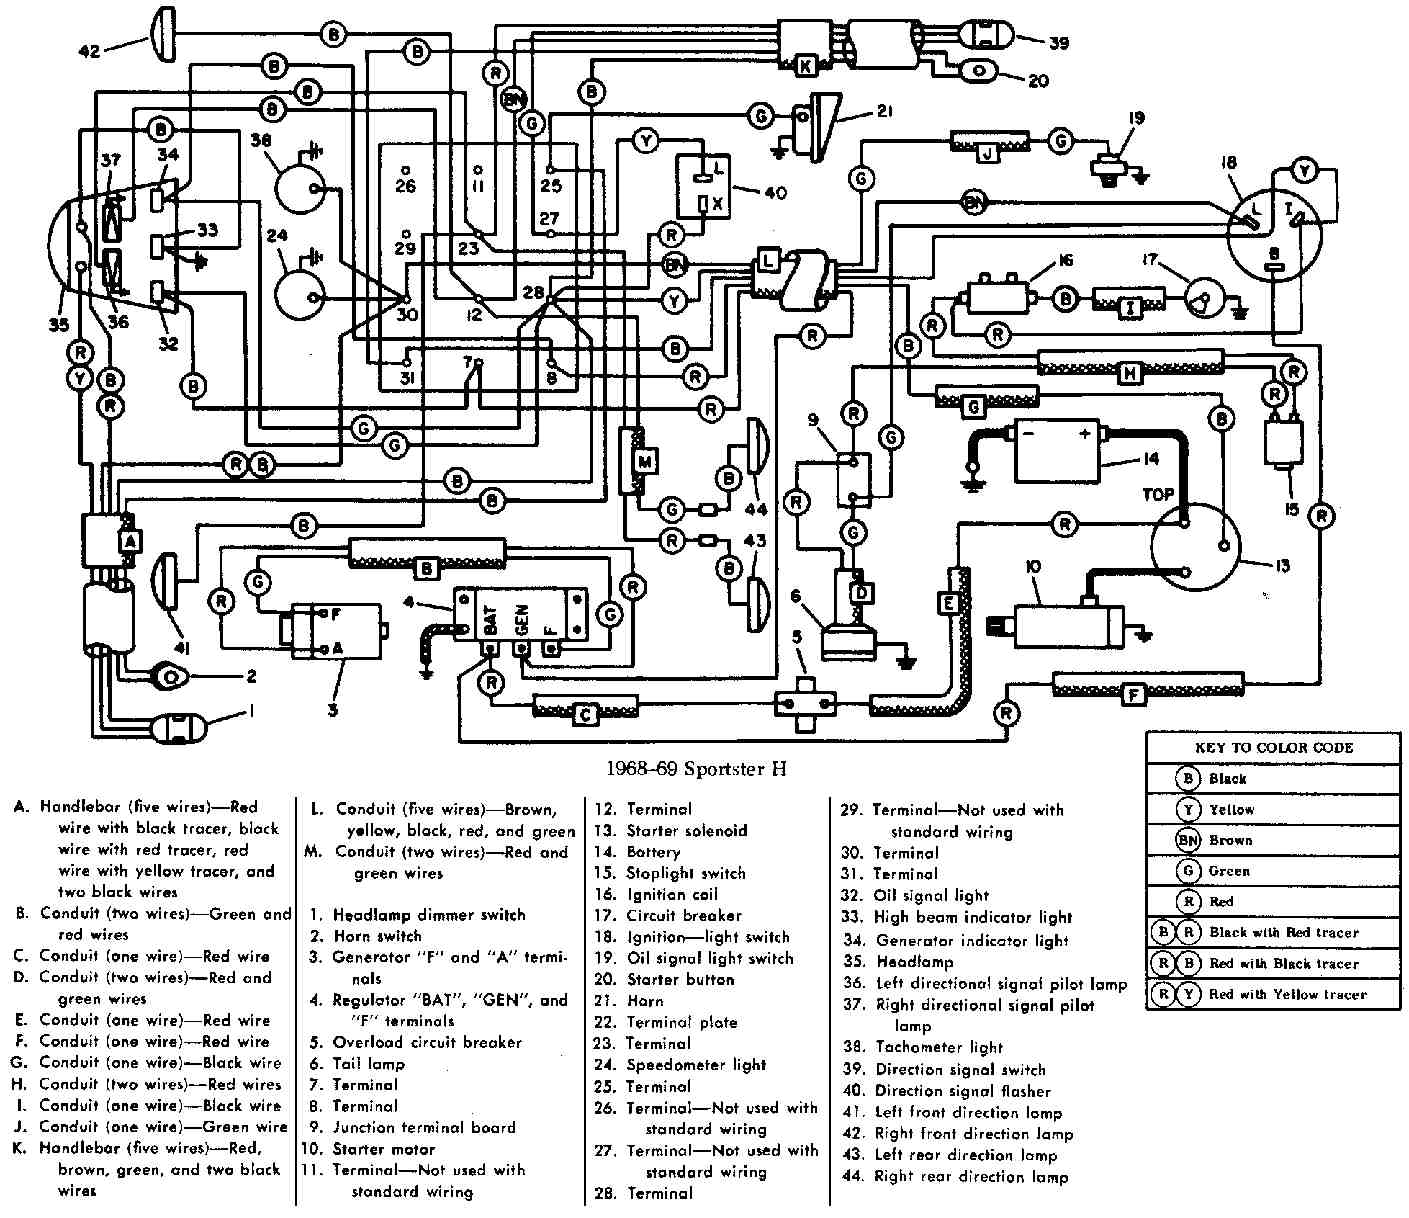 Yamaha Wiring Diagrams Fz1 Diagram Alfa Romeo Gt Wire Data Schema Harle Davidson Electrical Block And Schematic Rh Lazysupply Co